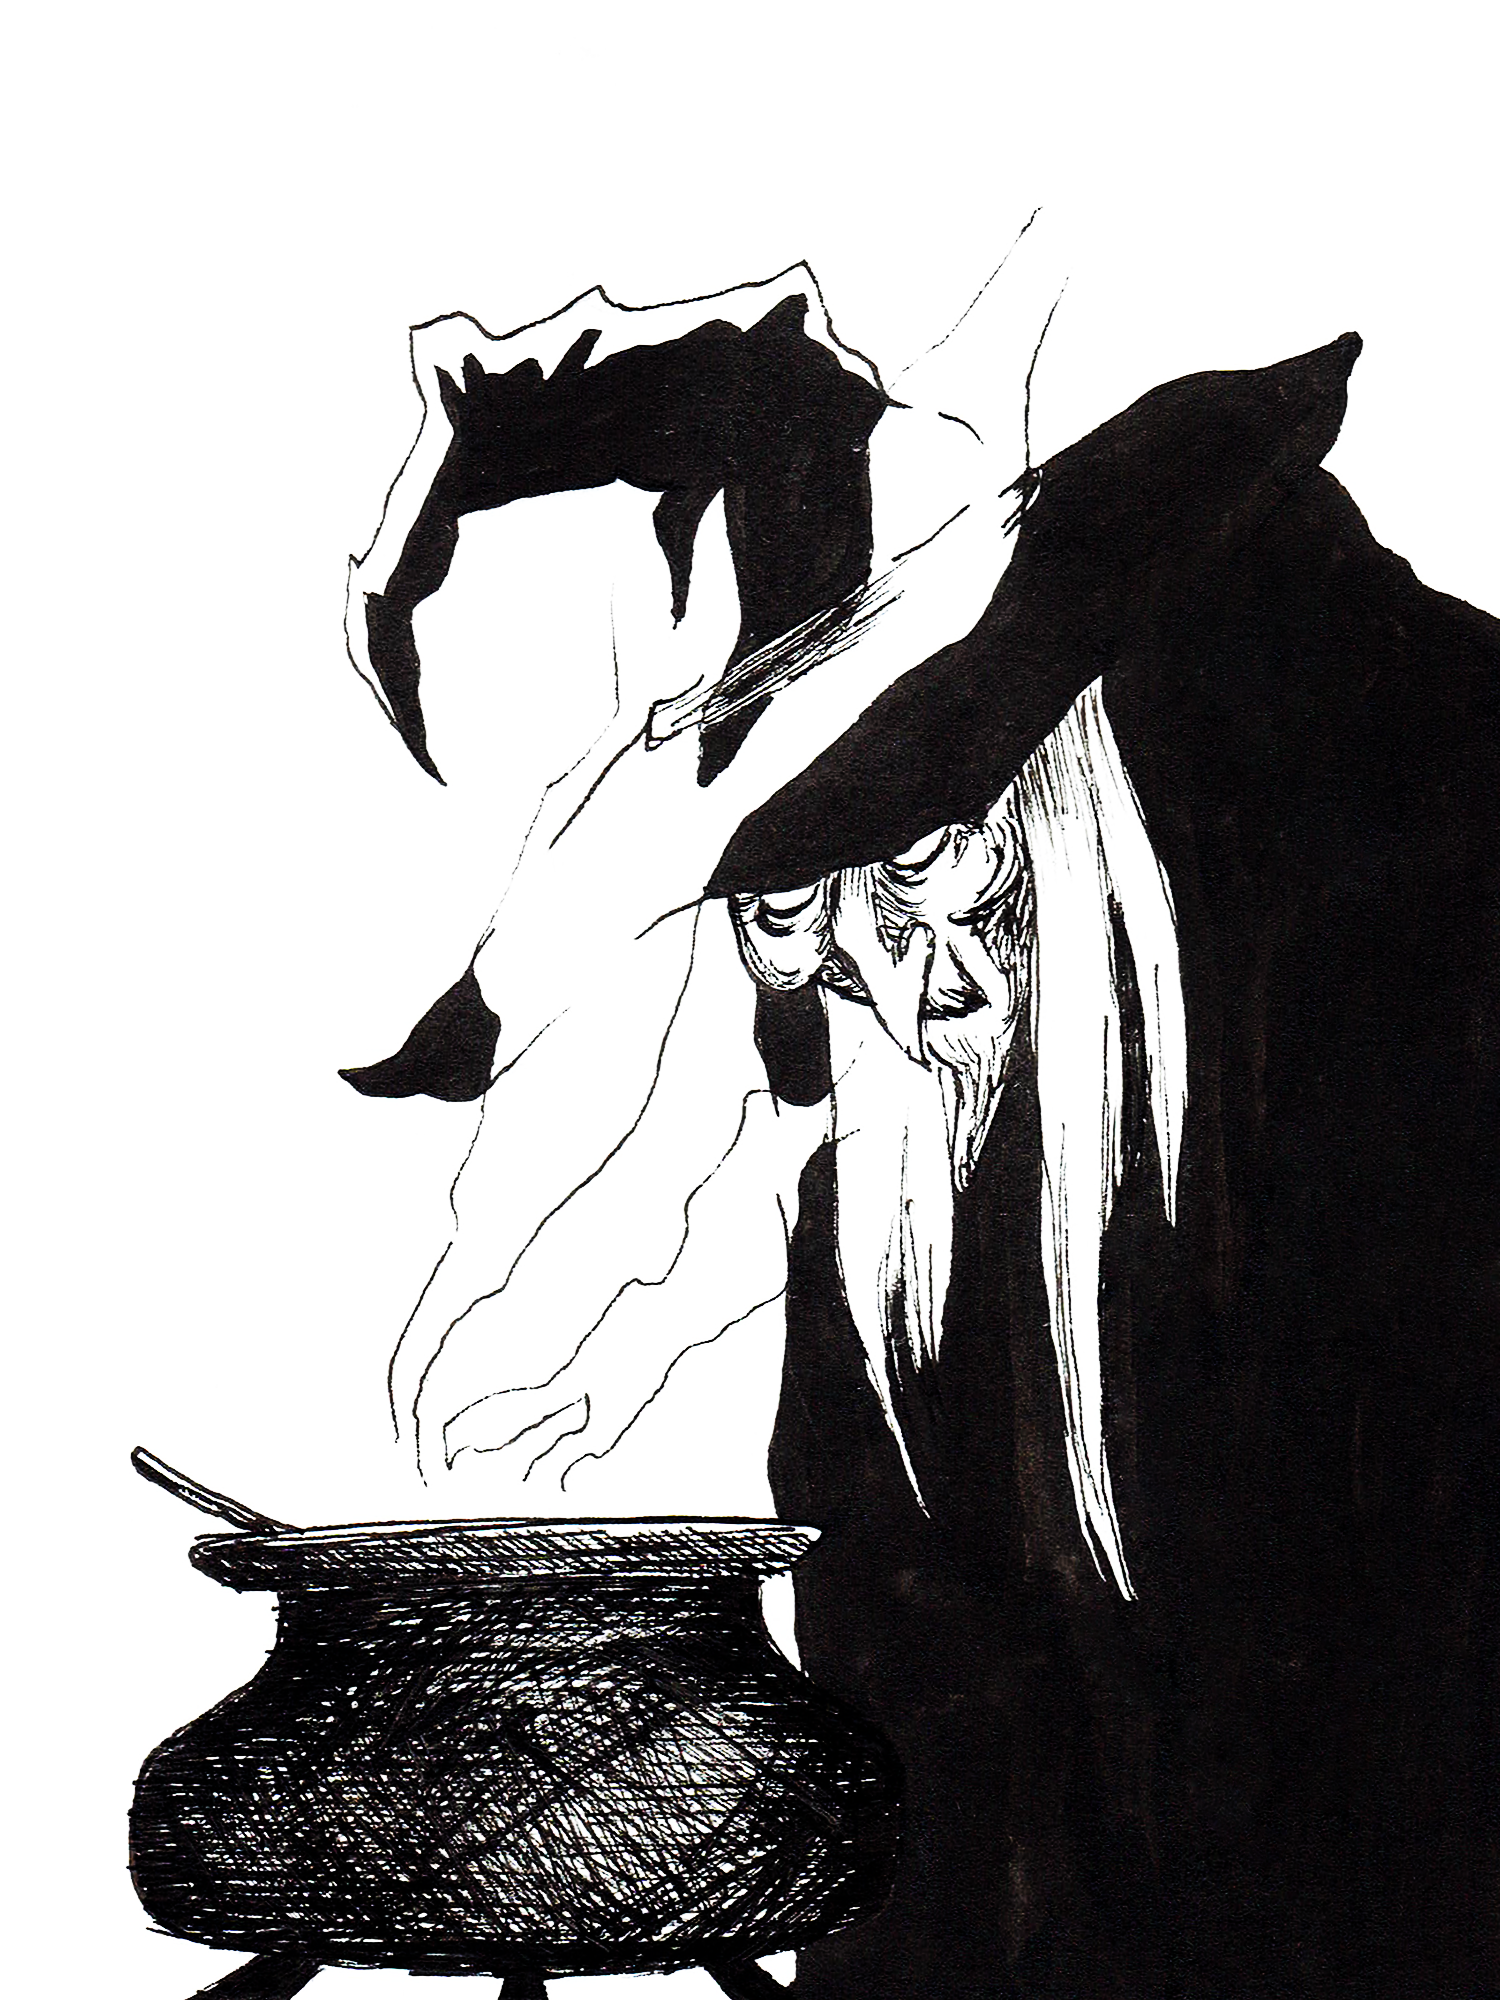 Inktober 2019 Day 18: Old Witch